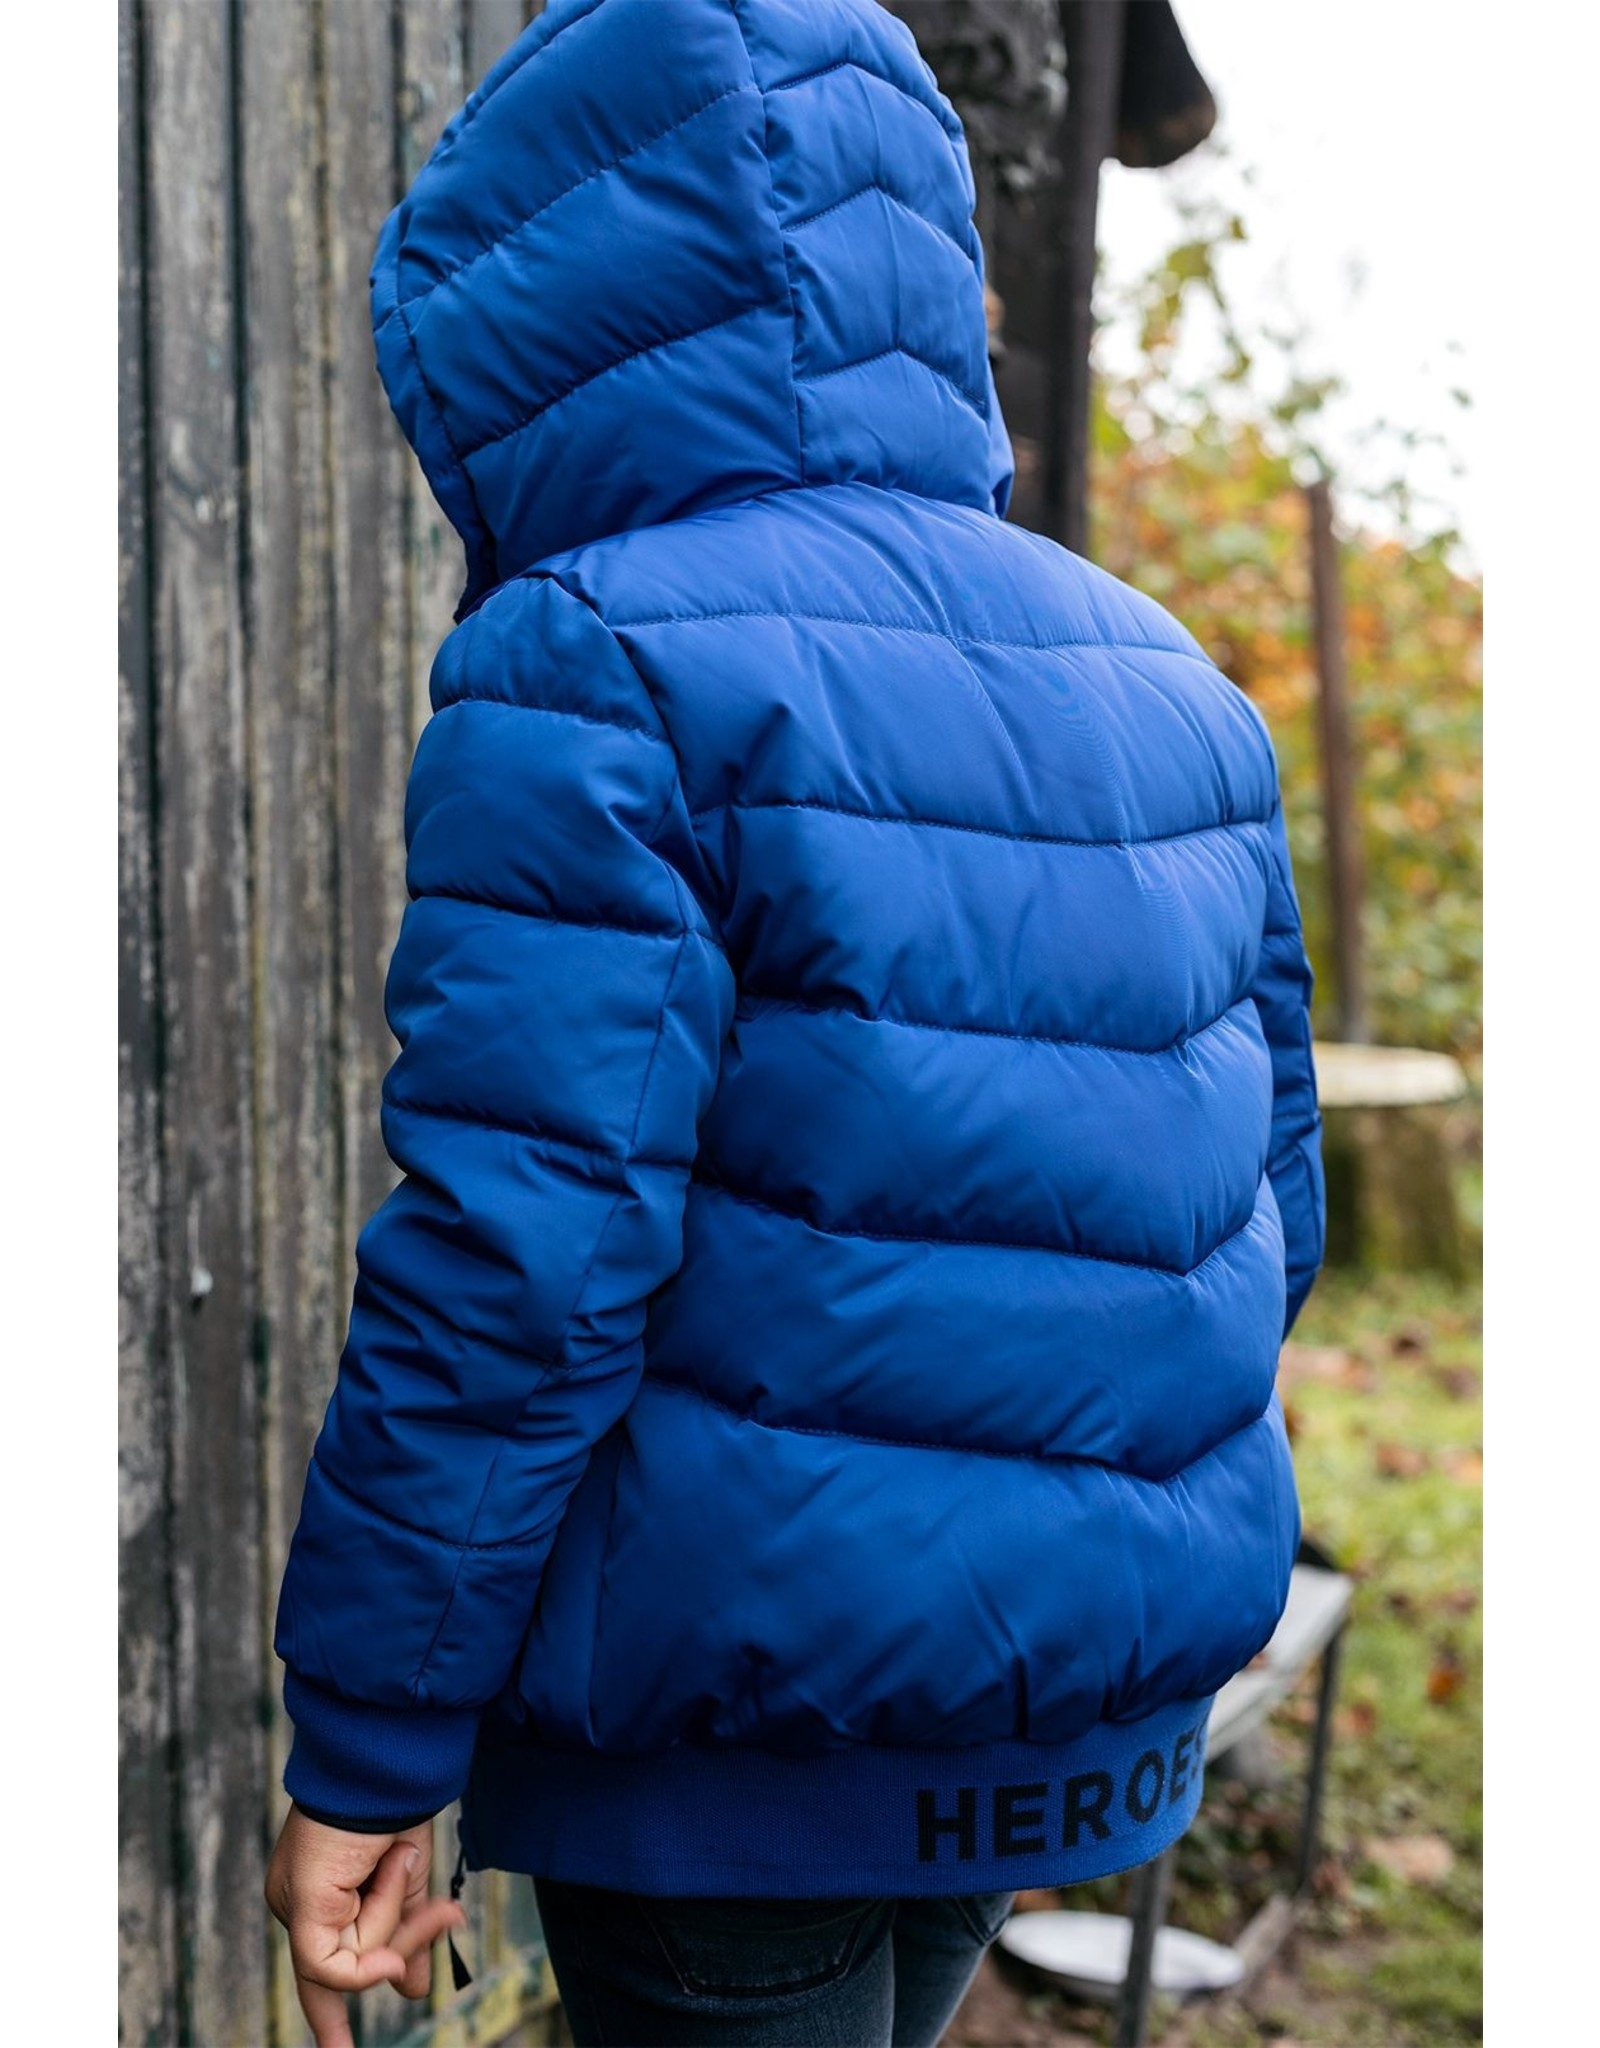 Common Heroes JAMES Faux down jacket